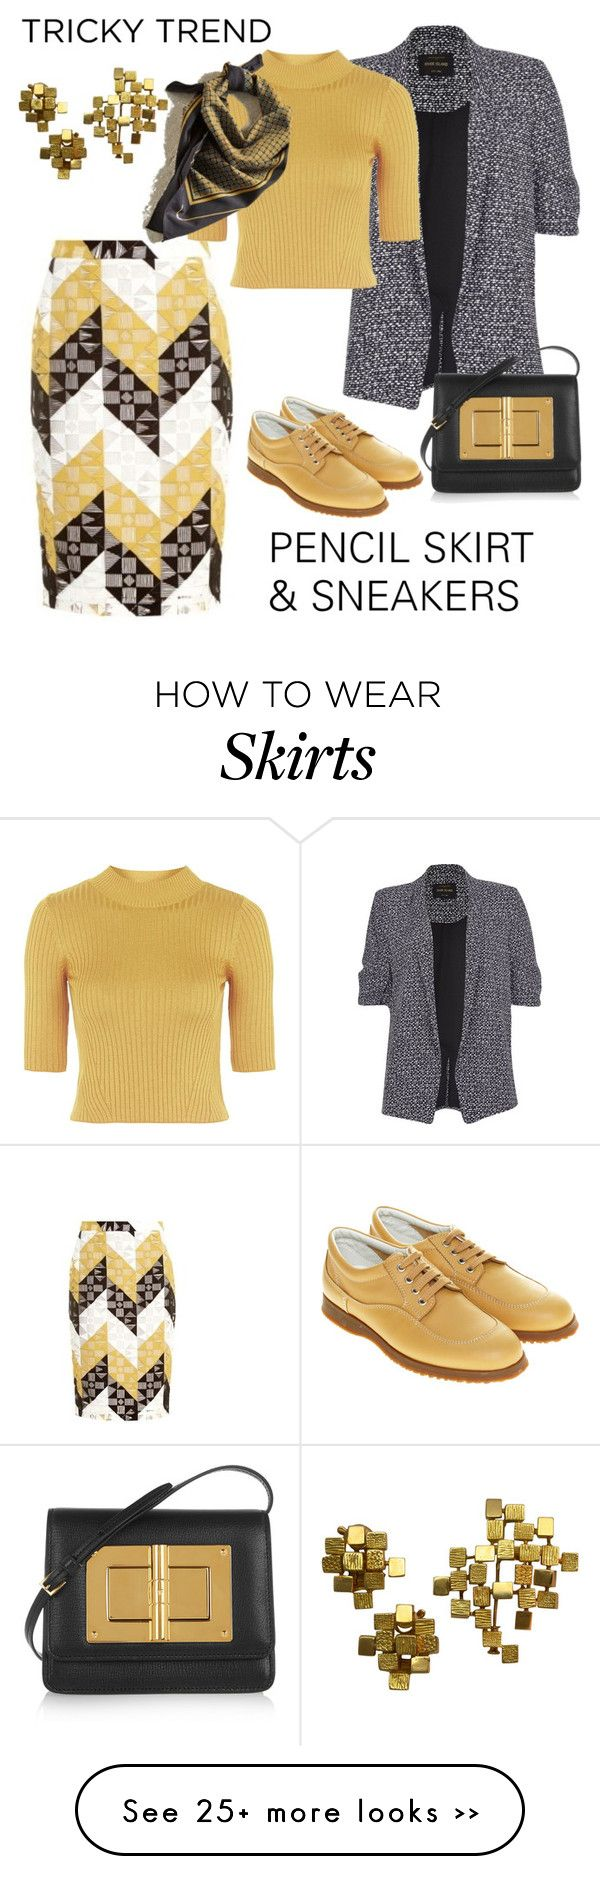 """TRICKY TREND: PENCIL SKIRT & SNEAKERS"" by granmaboat on Polyvore featuring A.L.C., River Island, Topshop, Hogan, Tom Ford and Mauboussin"